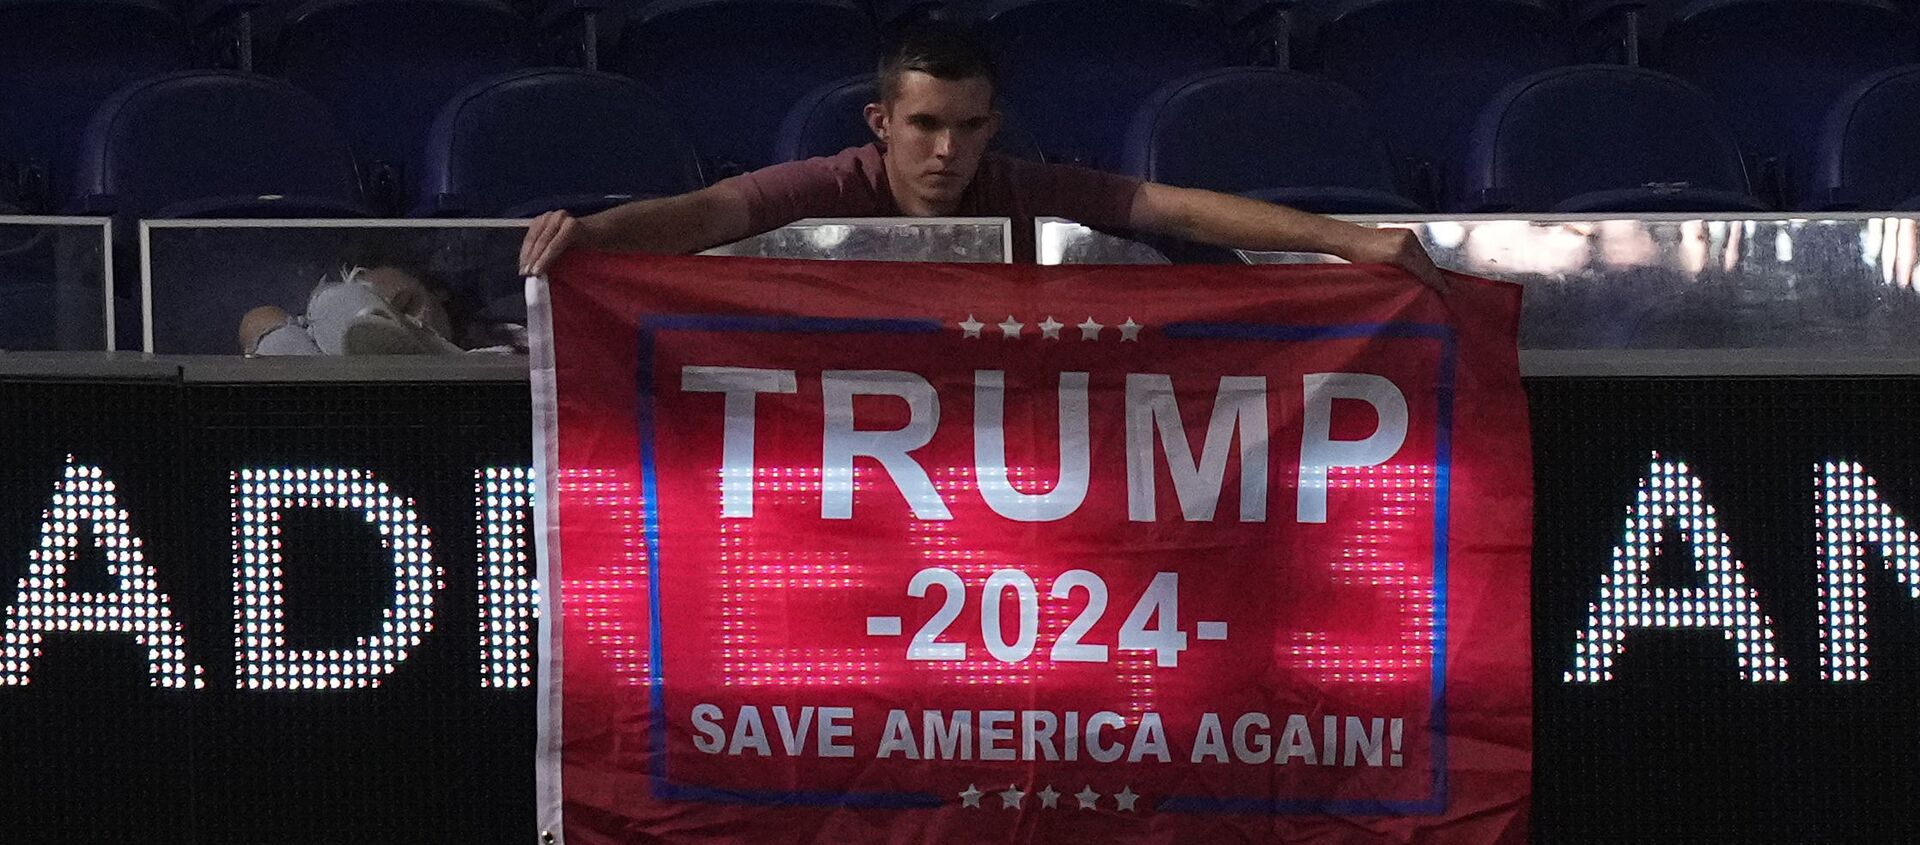 A fan displays a flag in support of former president Donald Trump in the upper deck after the game between the Miami Marlins and the San Diego Padres at loanDepot park - Sputnik International, 1920, 25.07.2021